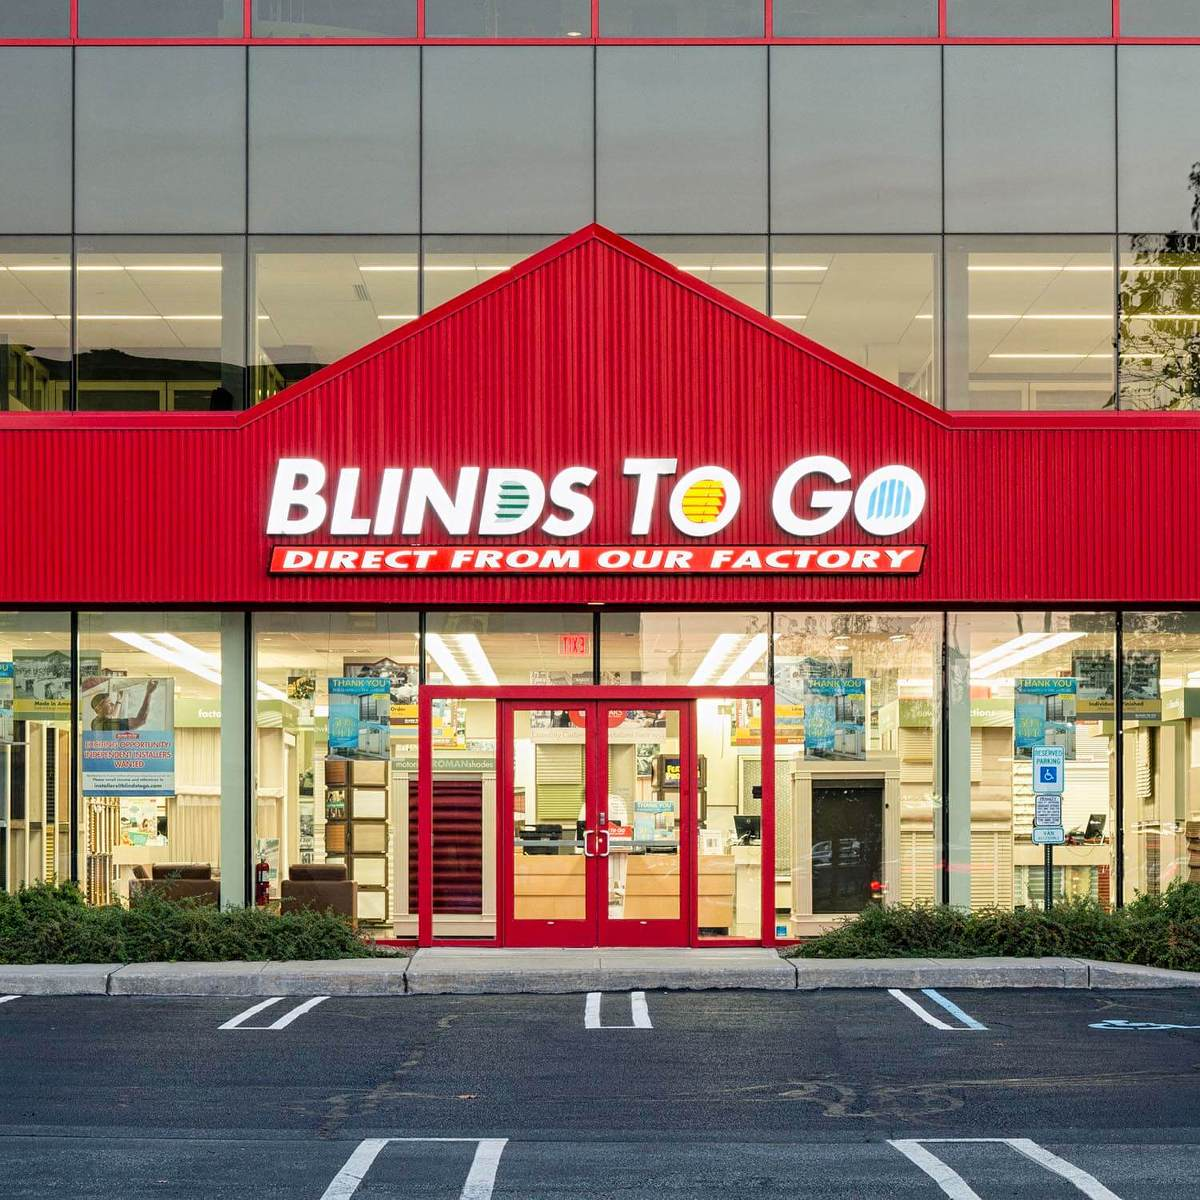 Find the nearest blinds to go store near you